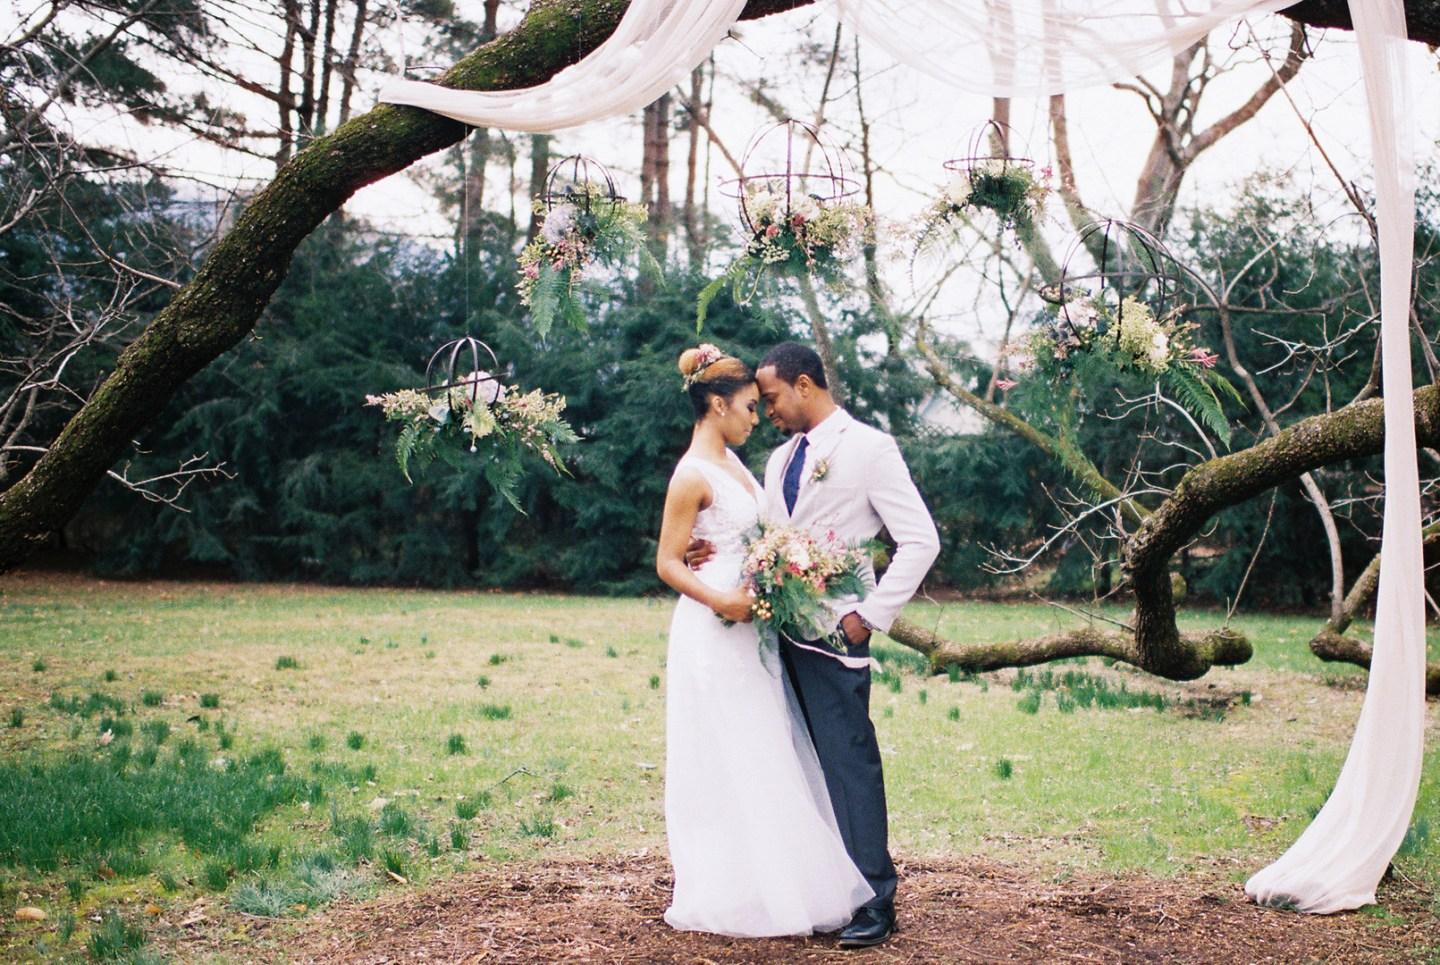 4z83nqvzohtgdj7ugz80_big-1440x965 Hot Springs, NC Wedding Inspiration at Mountain Magnolia Inn